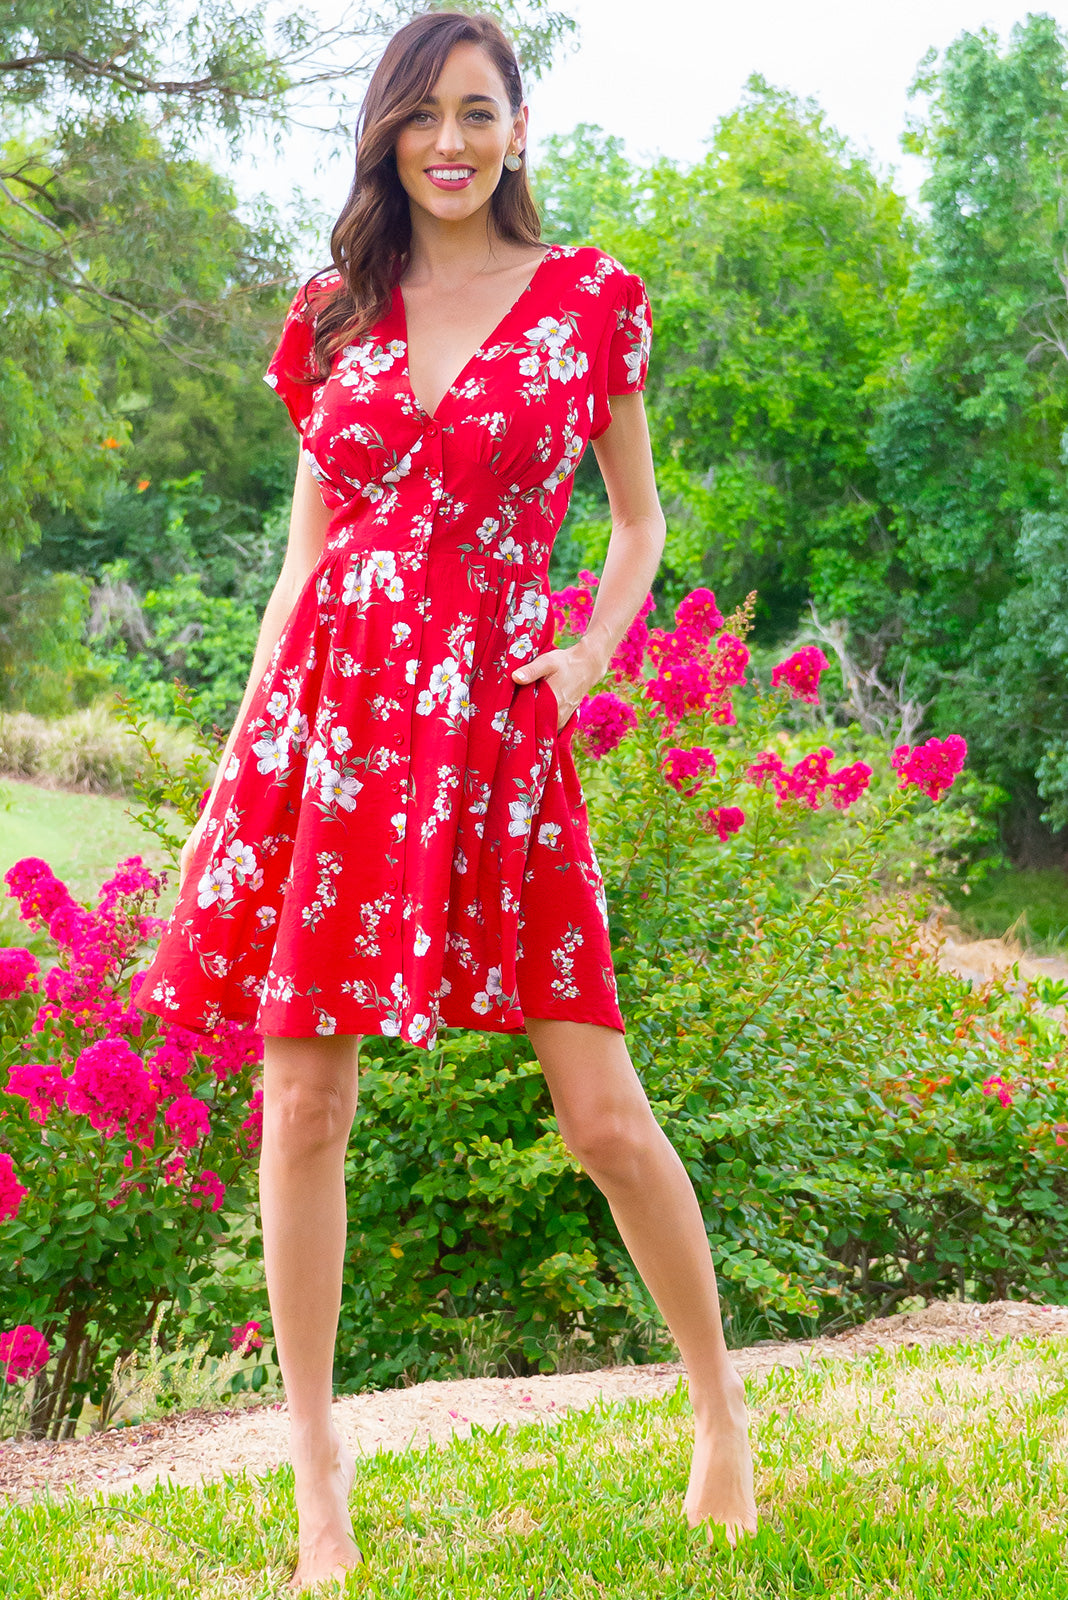 Peggy Aria Red Mini dress features a vintage inspired fitted basque waist and elasticated waist with a cap sleeve, deep v neck and a functional button front the fabric is a soft woven rayon nylon blend in a bright red floral print